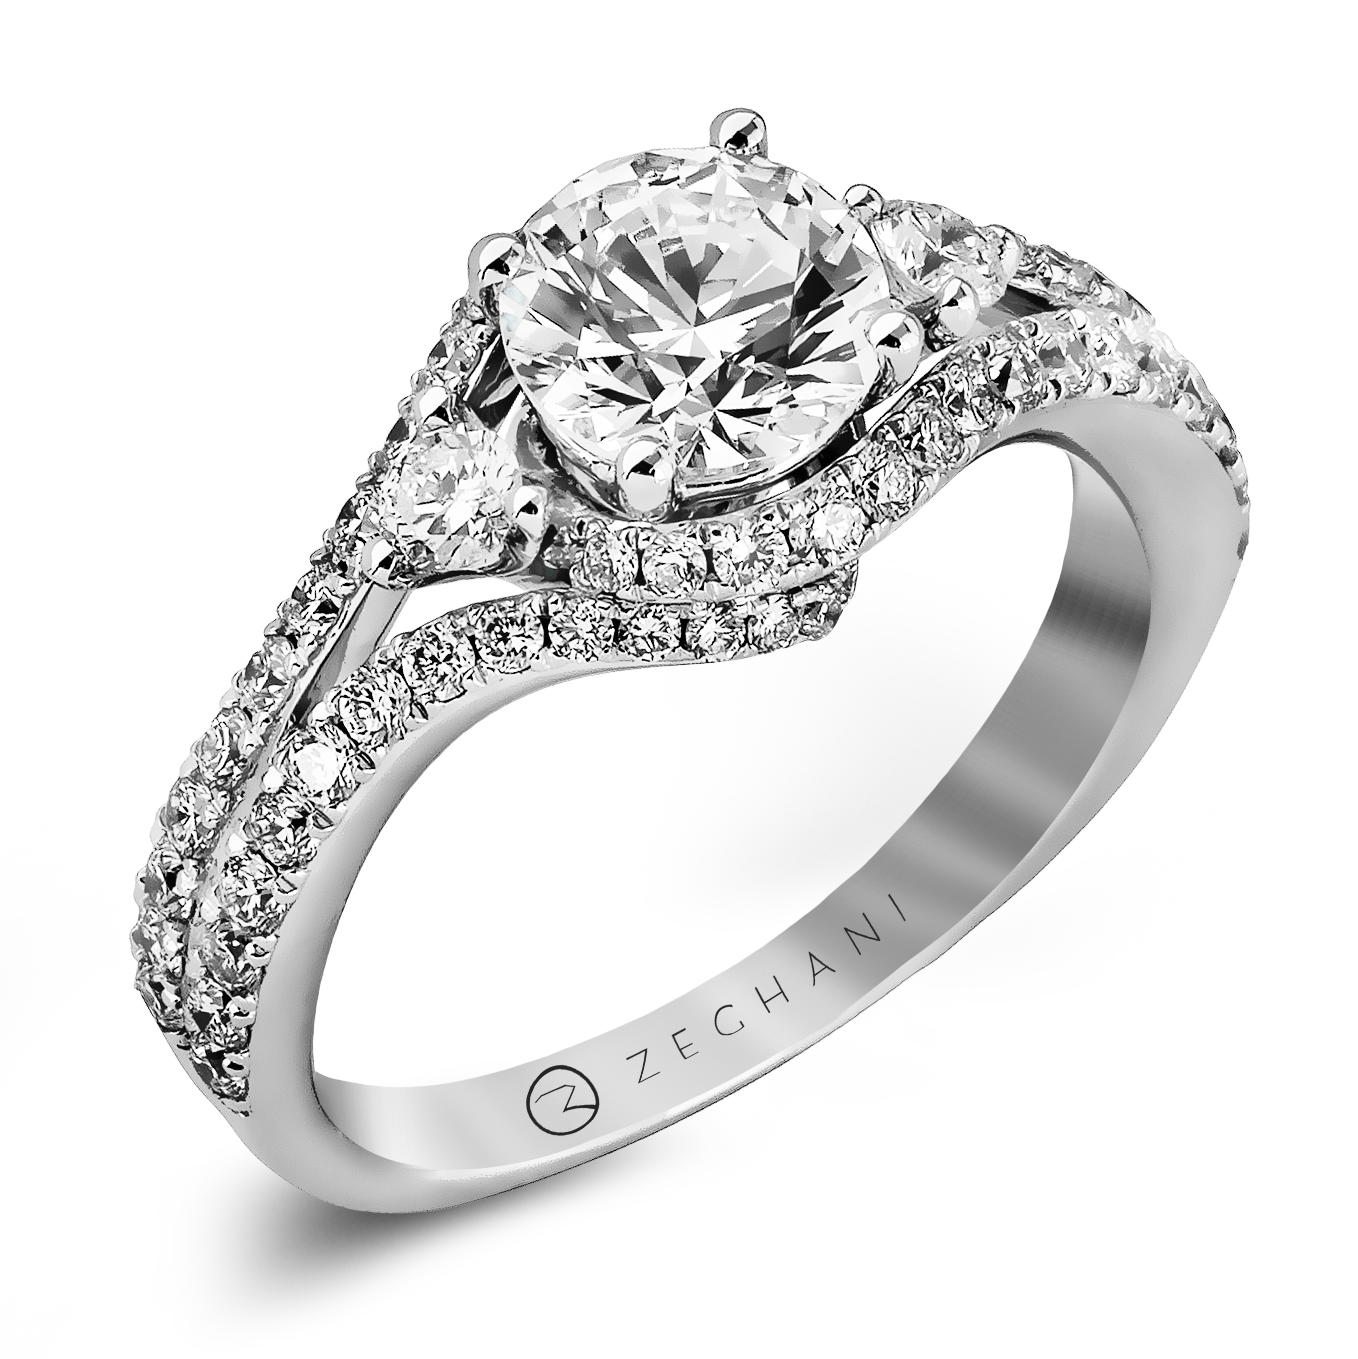 ZR873 ENGAGEMENT RING